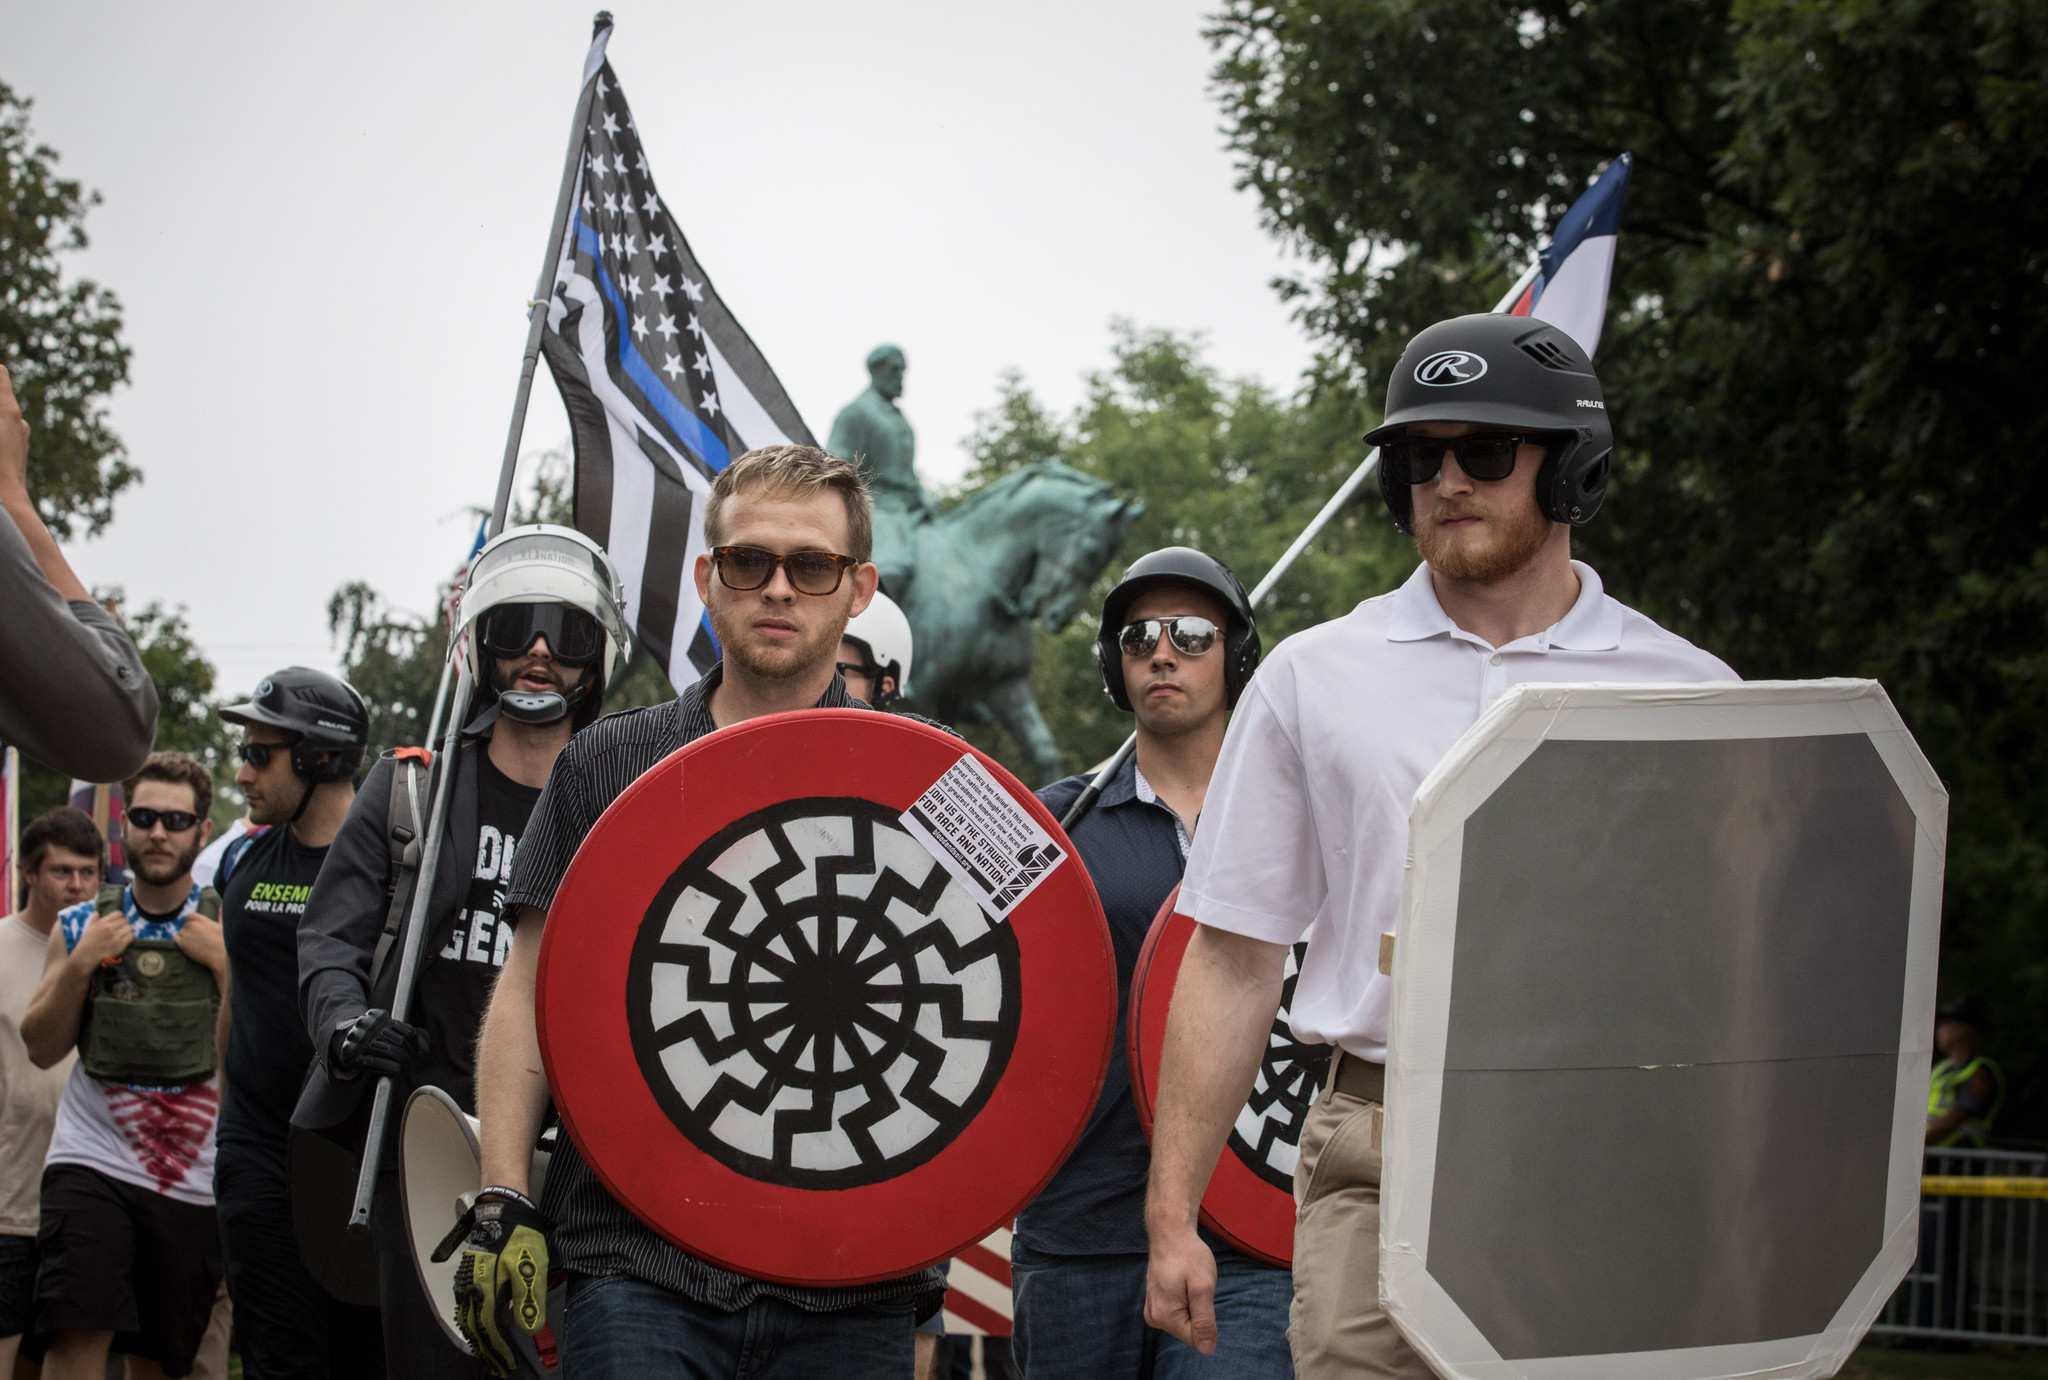 Emboldened White Nationalists Say Charlottesville Is Just The Beginning    Chicago Tribune